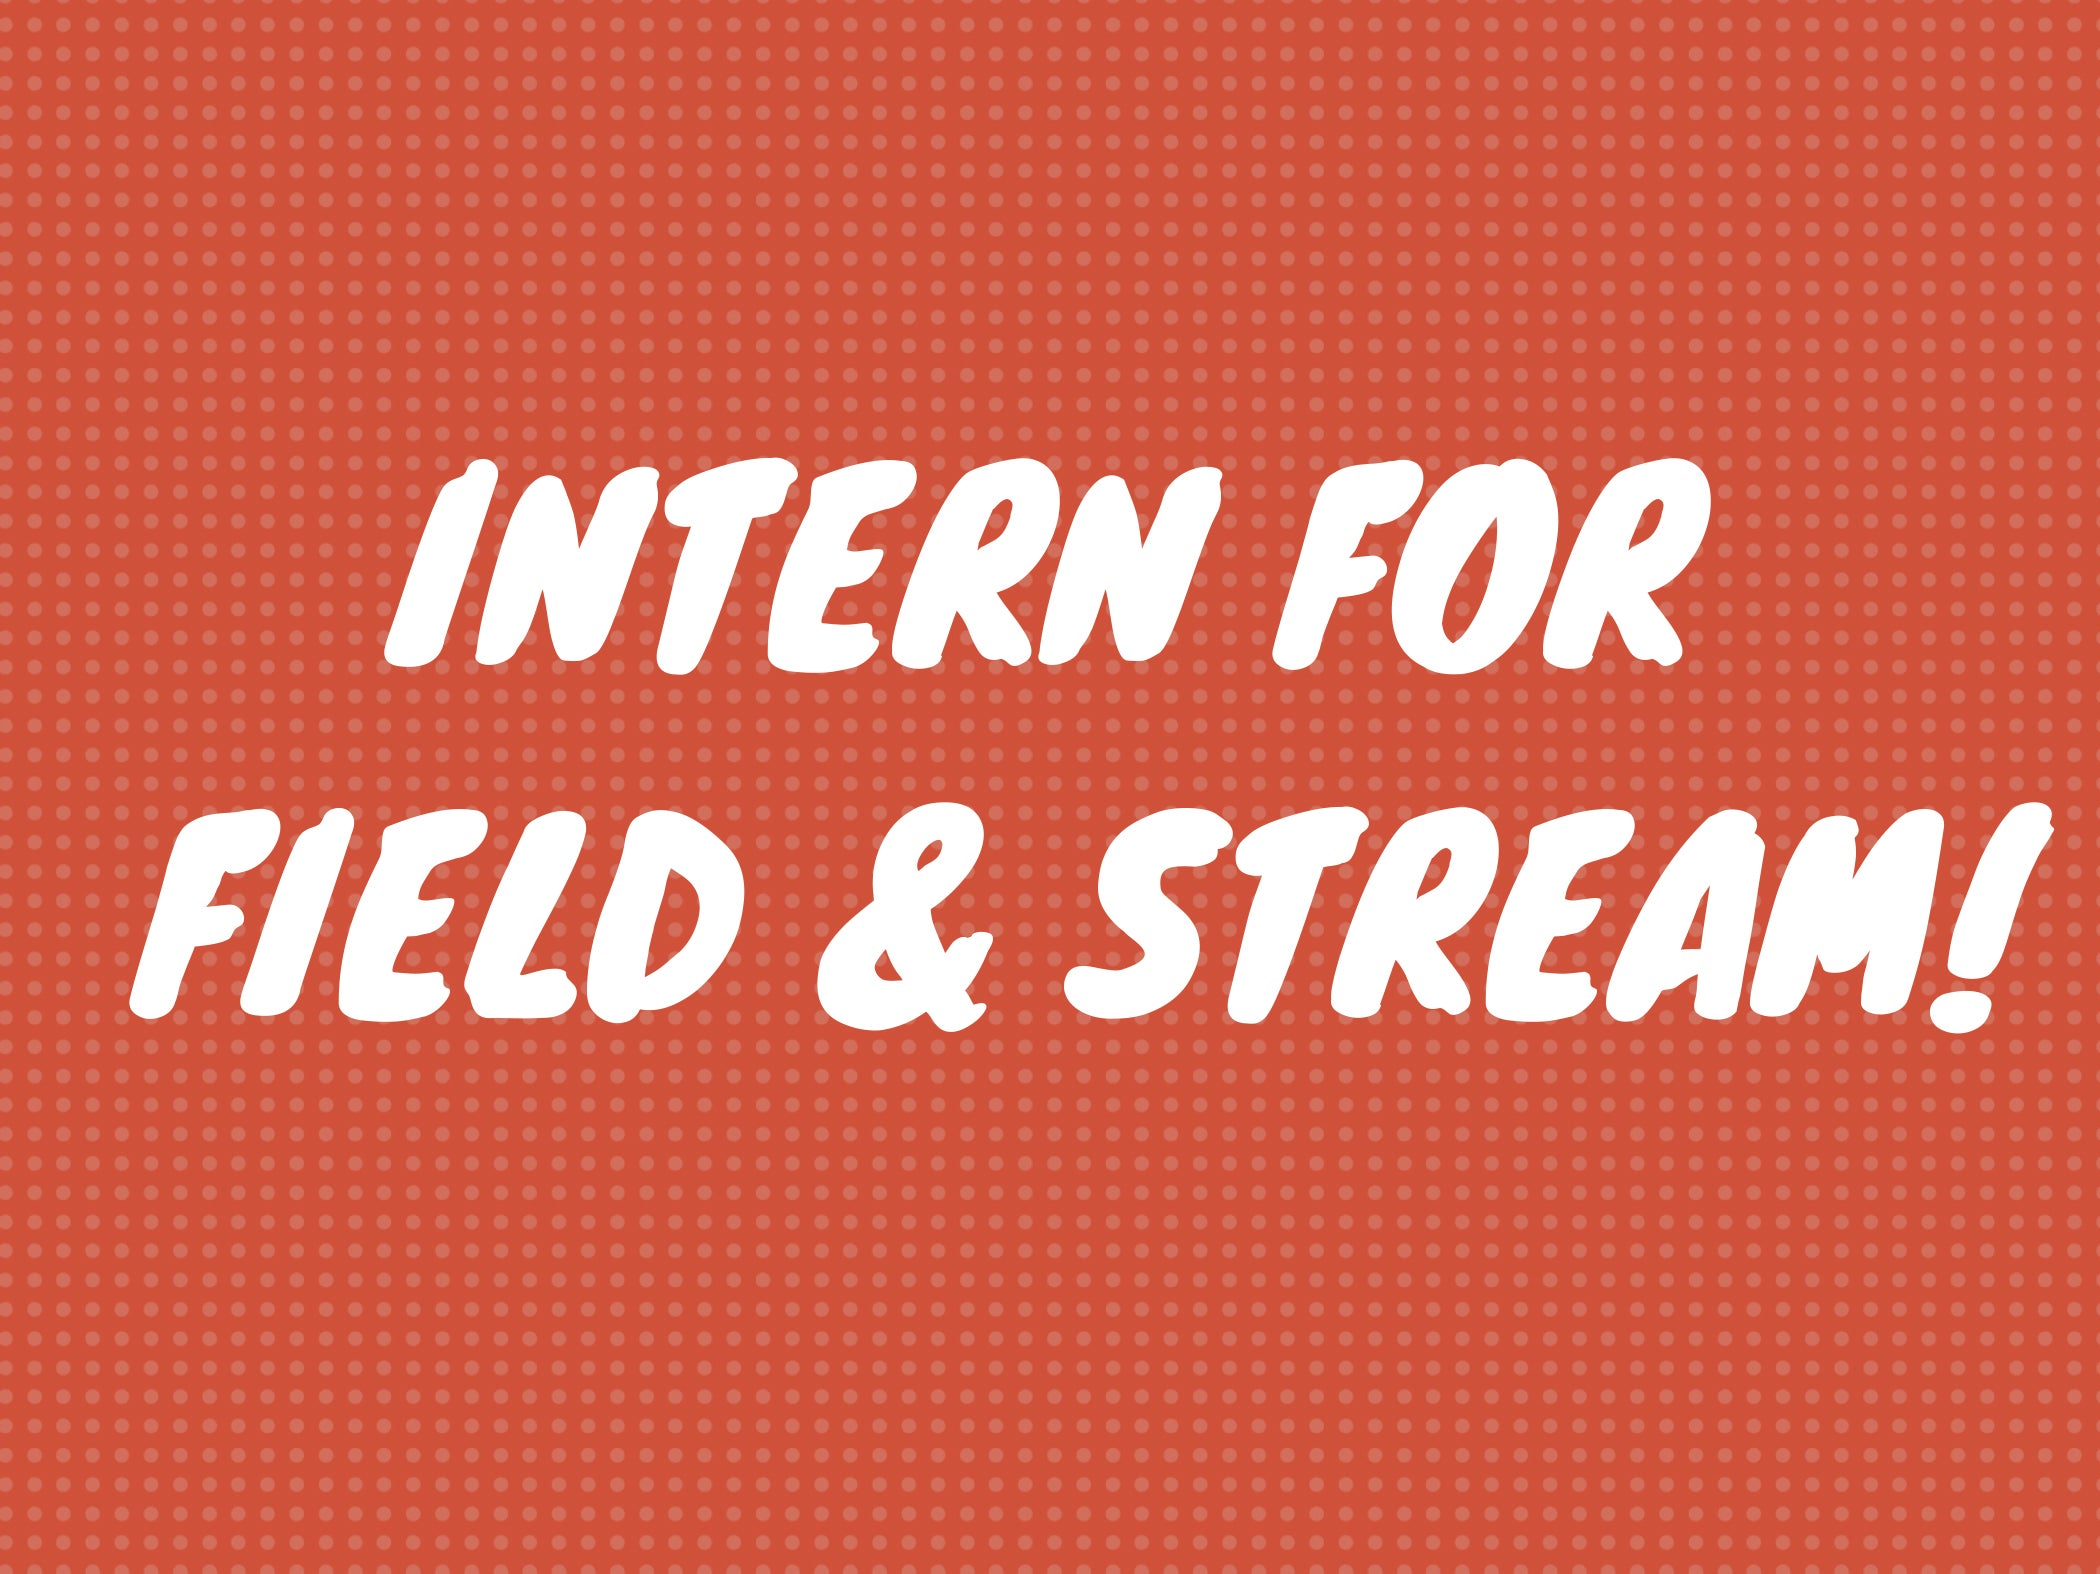 Come Intern for Field & Stream This Summer!